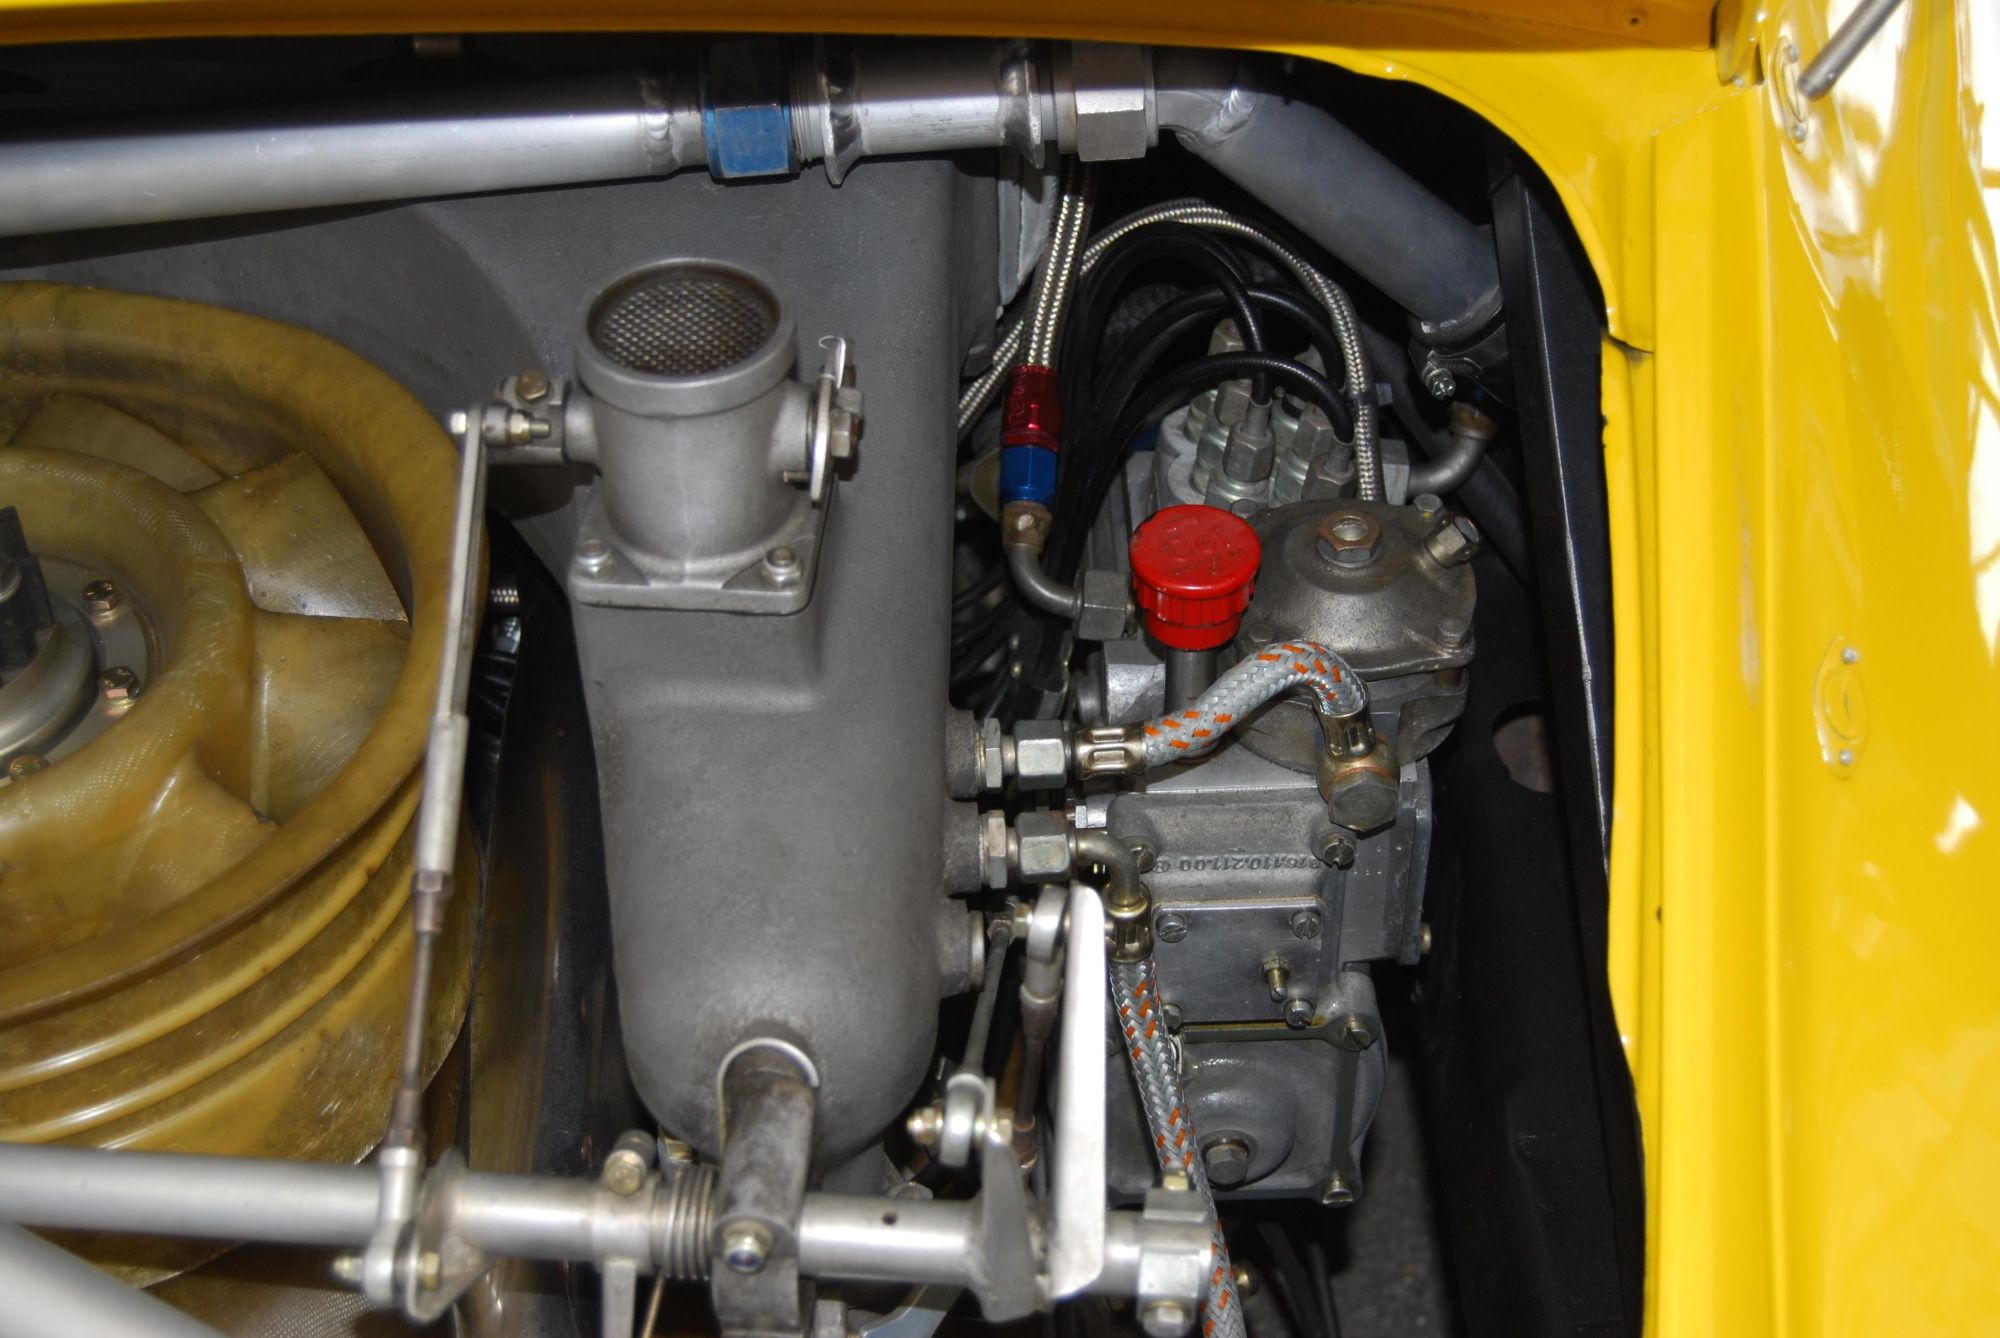 hight resolution of this porsche fuel injection system is complex but serviceable